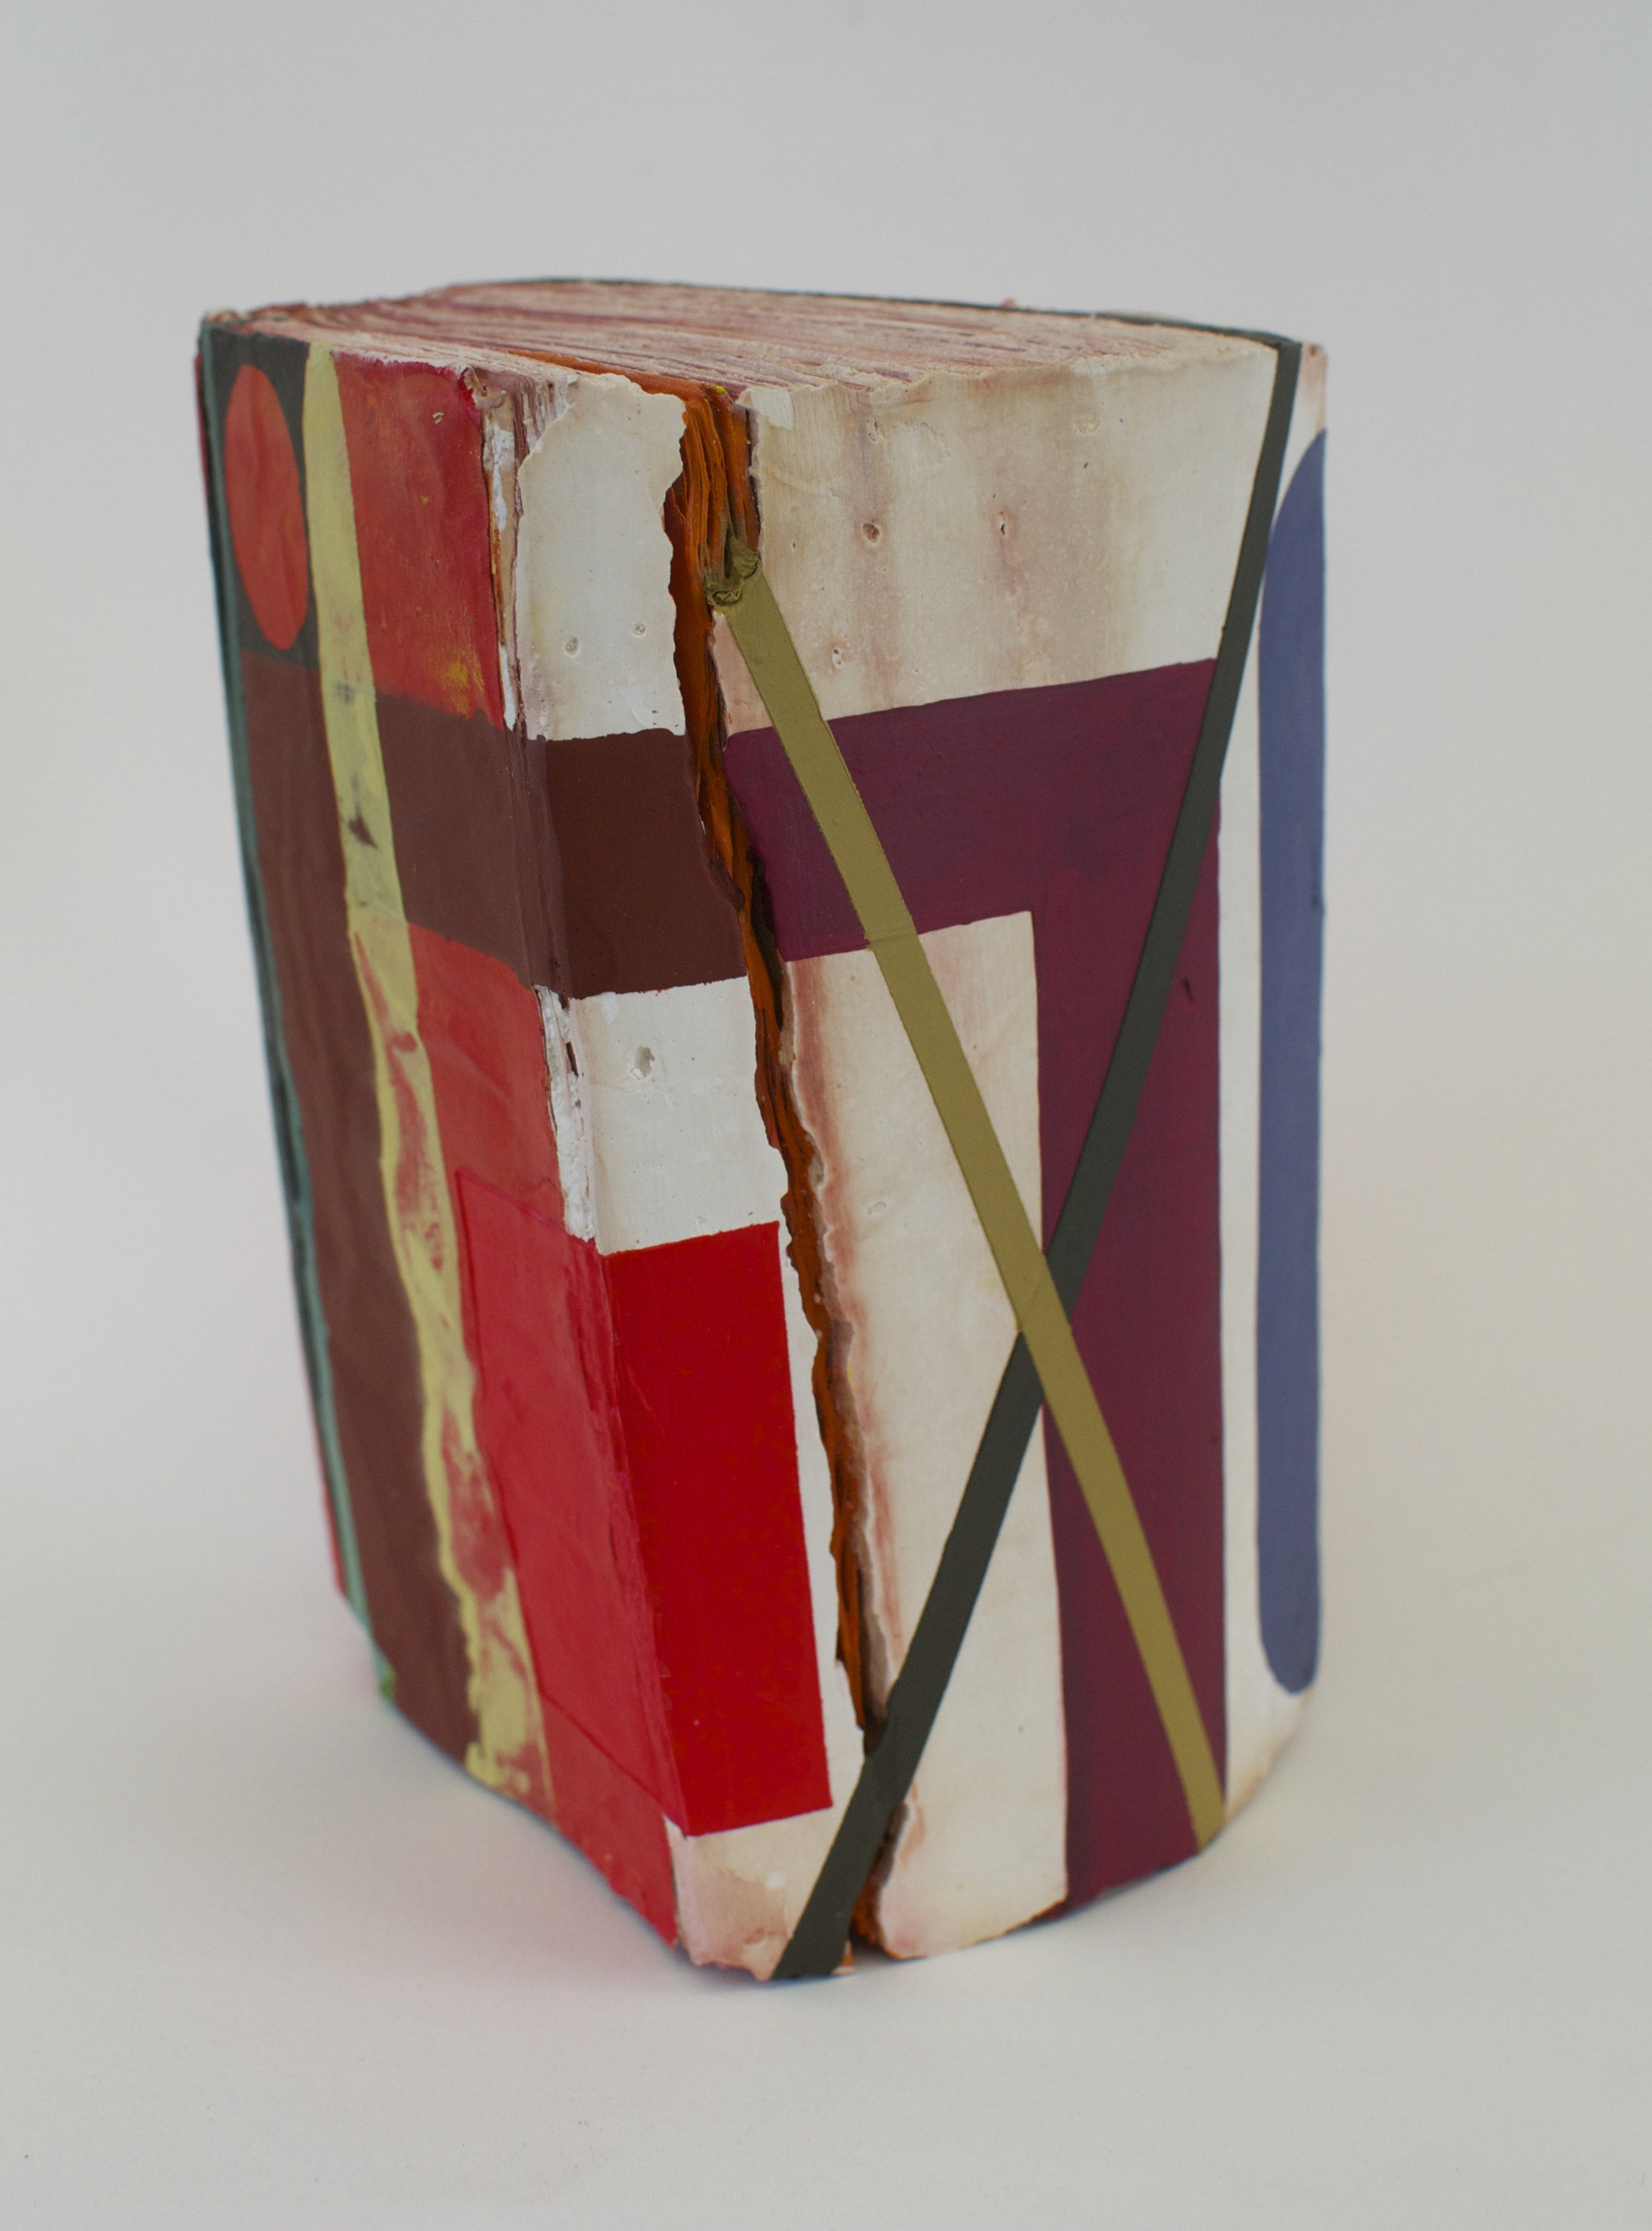 Word Problems 2016  acrylic on hydrocal and found book  7.5 x 4.5 x 4.5